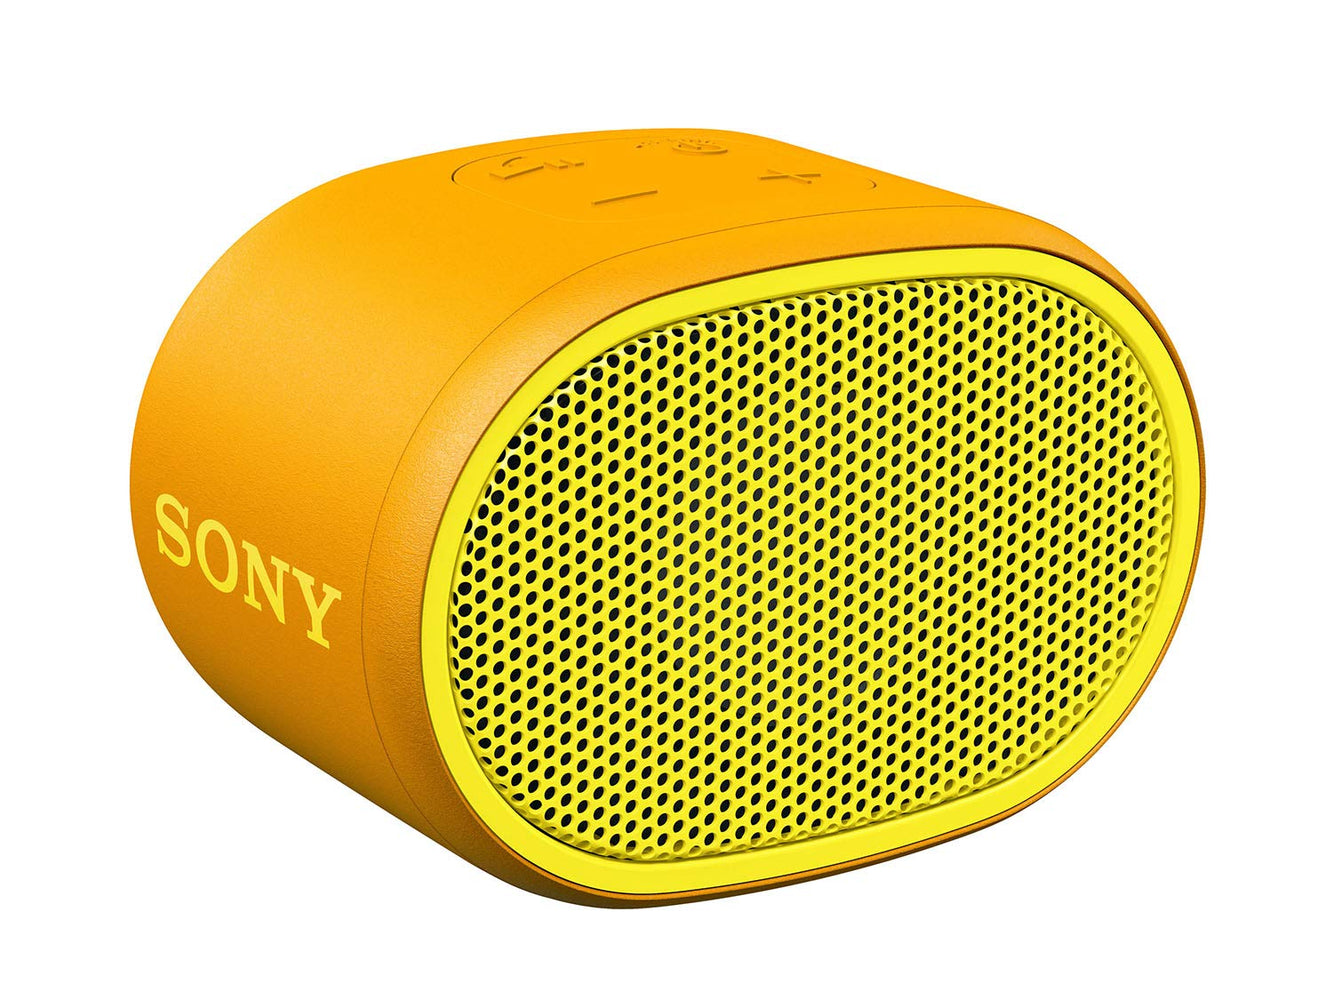 Sony SRS-XB01 Wireless Extra Bass Bluetooth Speaker with 6 Hours Battery Life (Yellow)